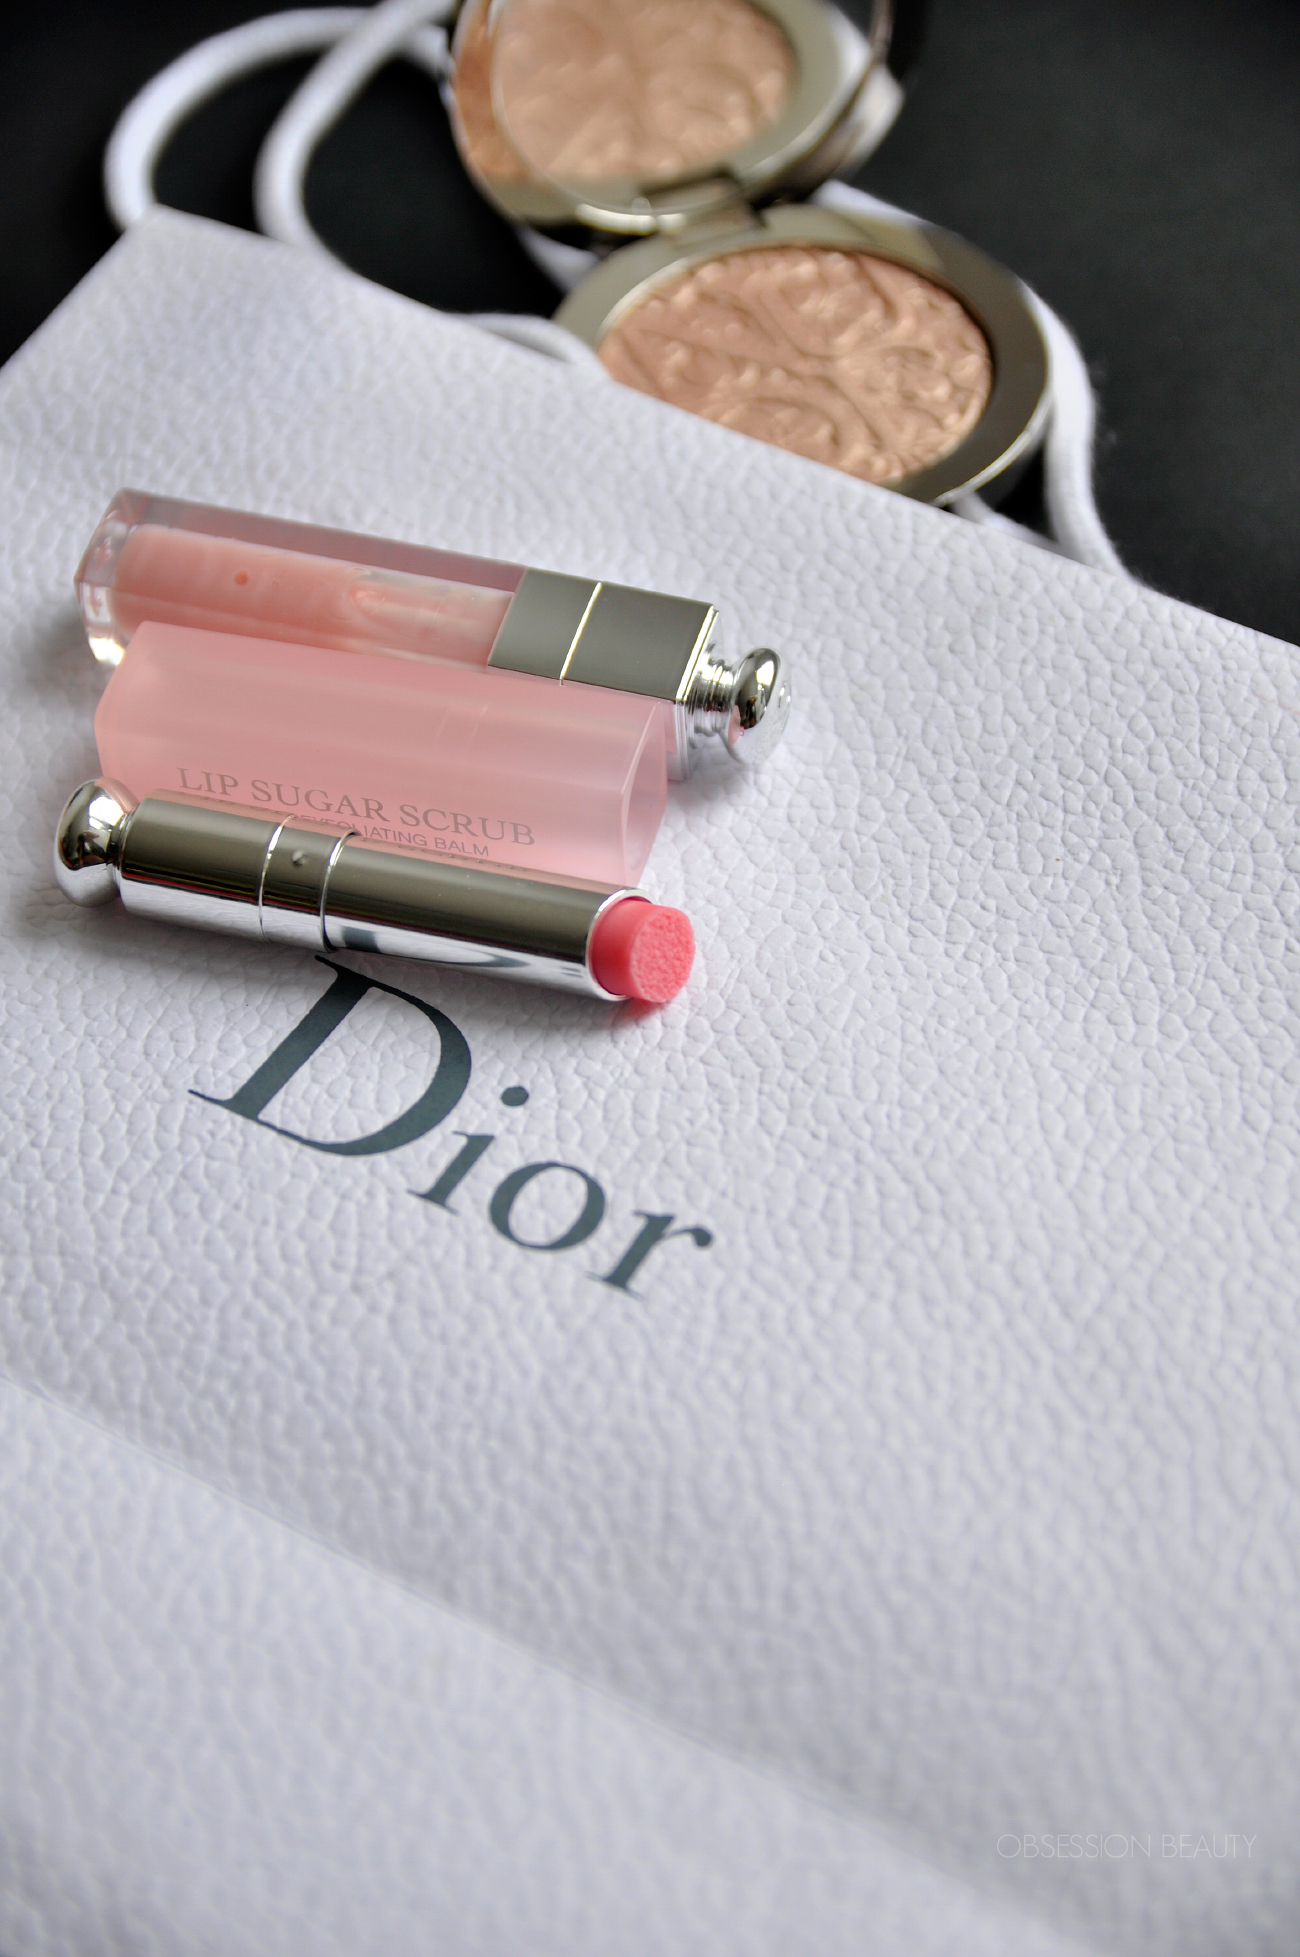 Dior-Addict-Lip-Sugar-Scrub6